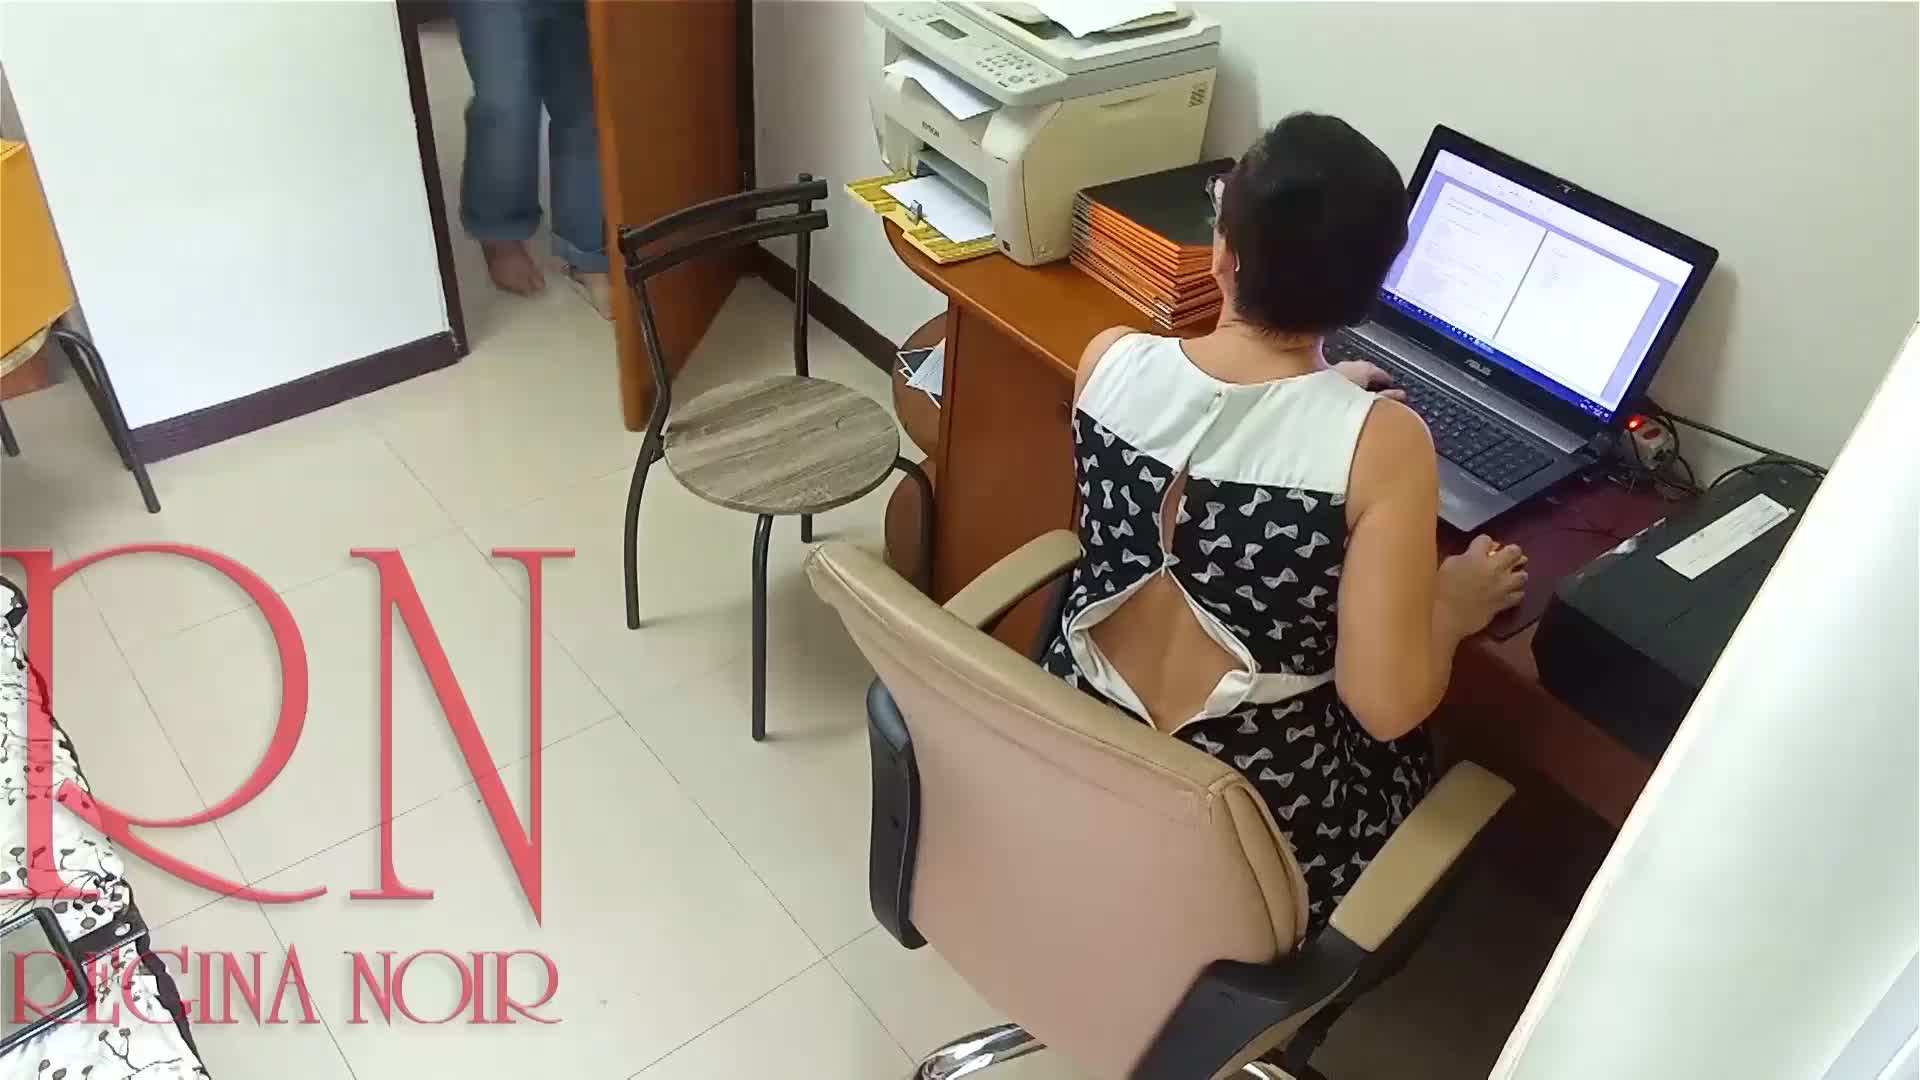 Lady boss and employee Pussy lick Do you want to be my employee The woman boss ordered the employee to make her cunnilingus Hidden camera in office-64107523